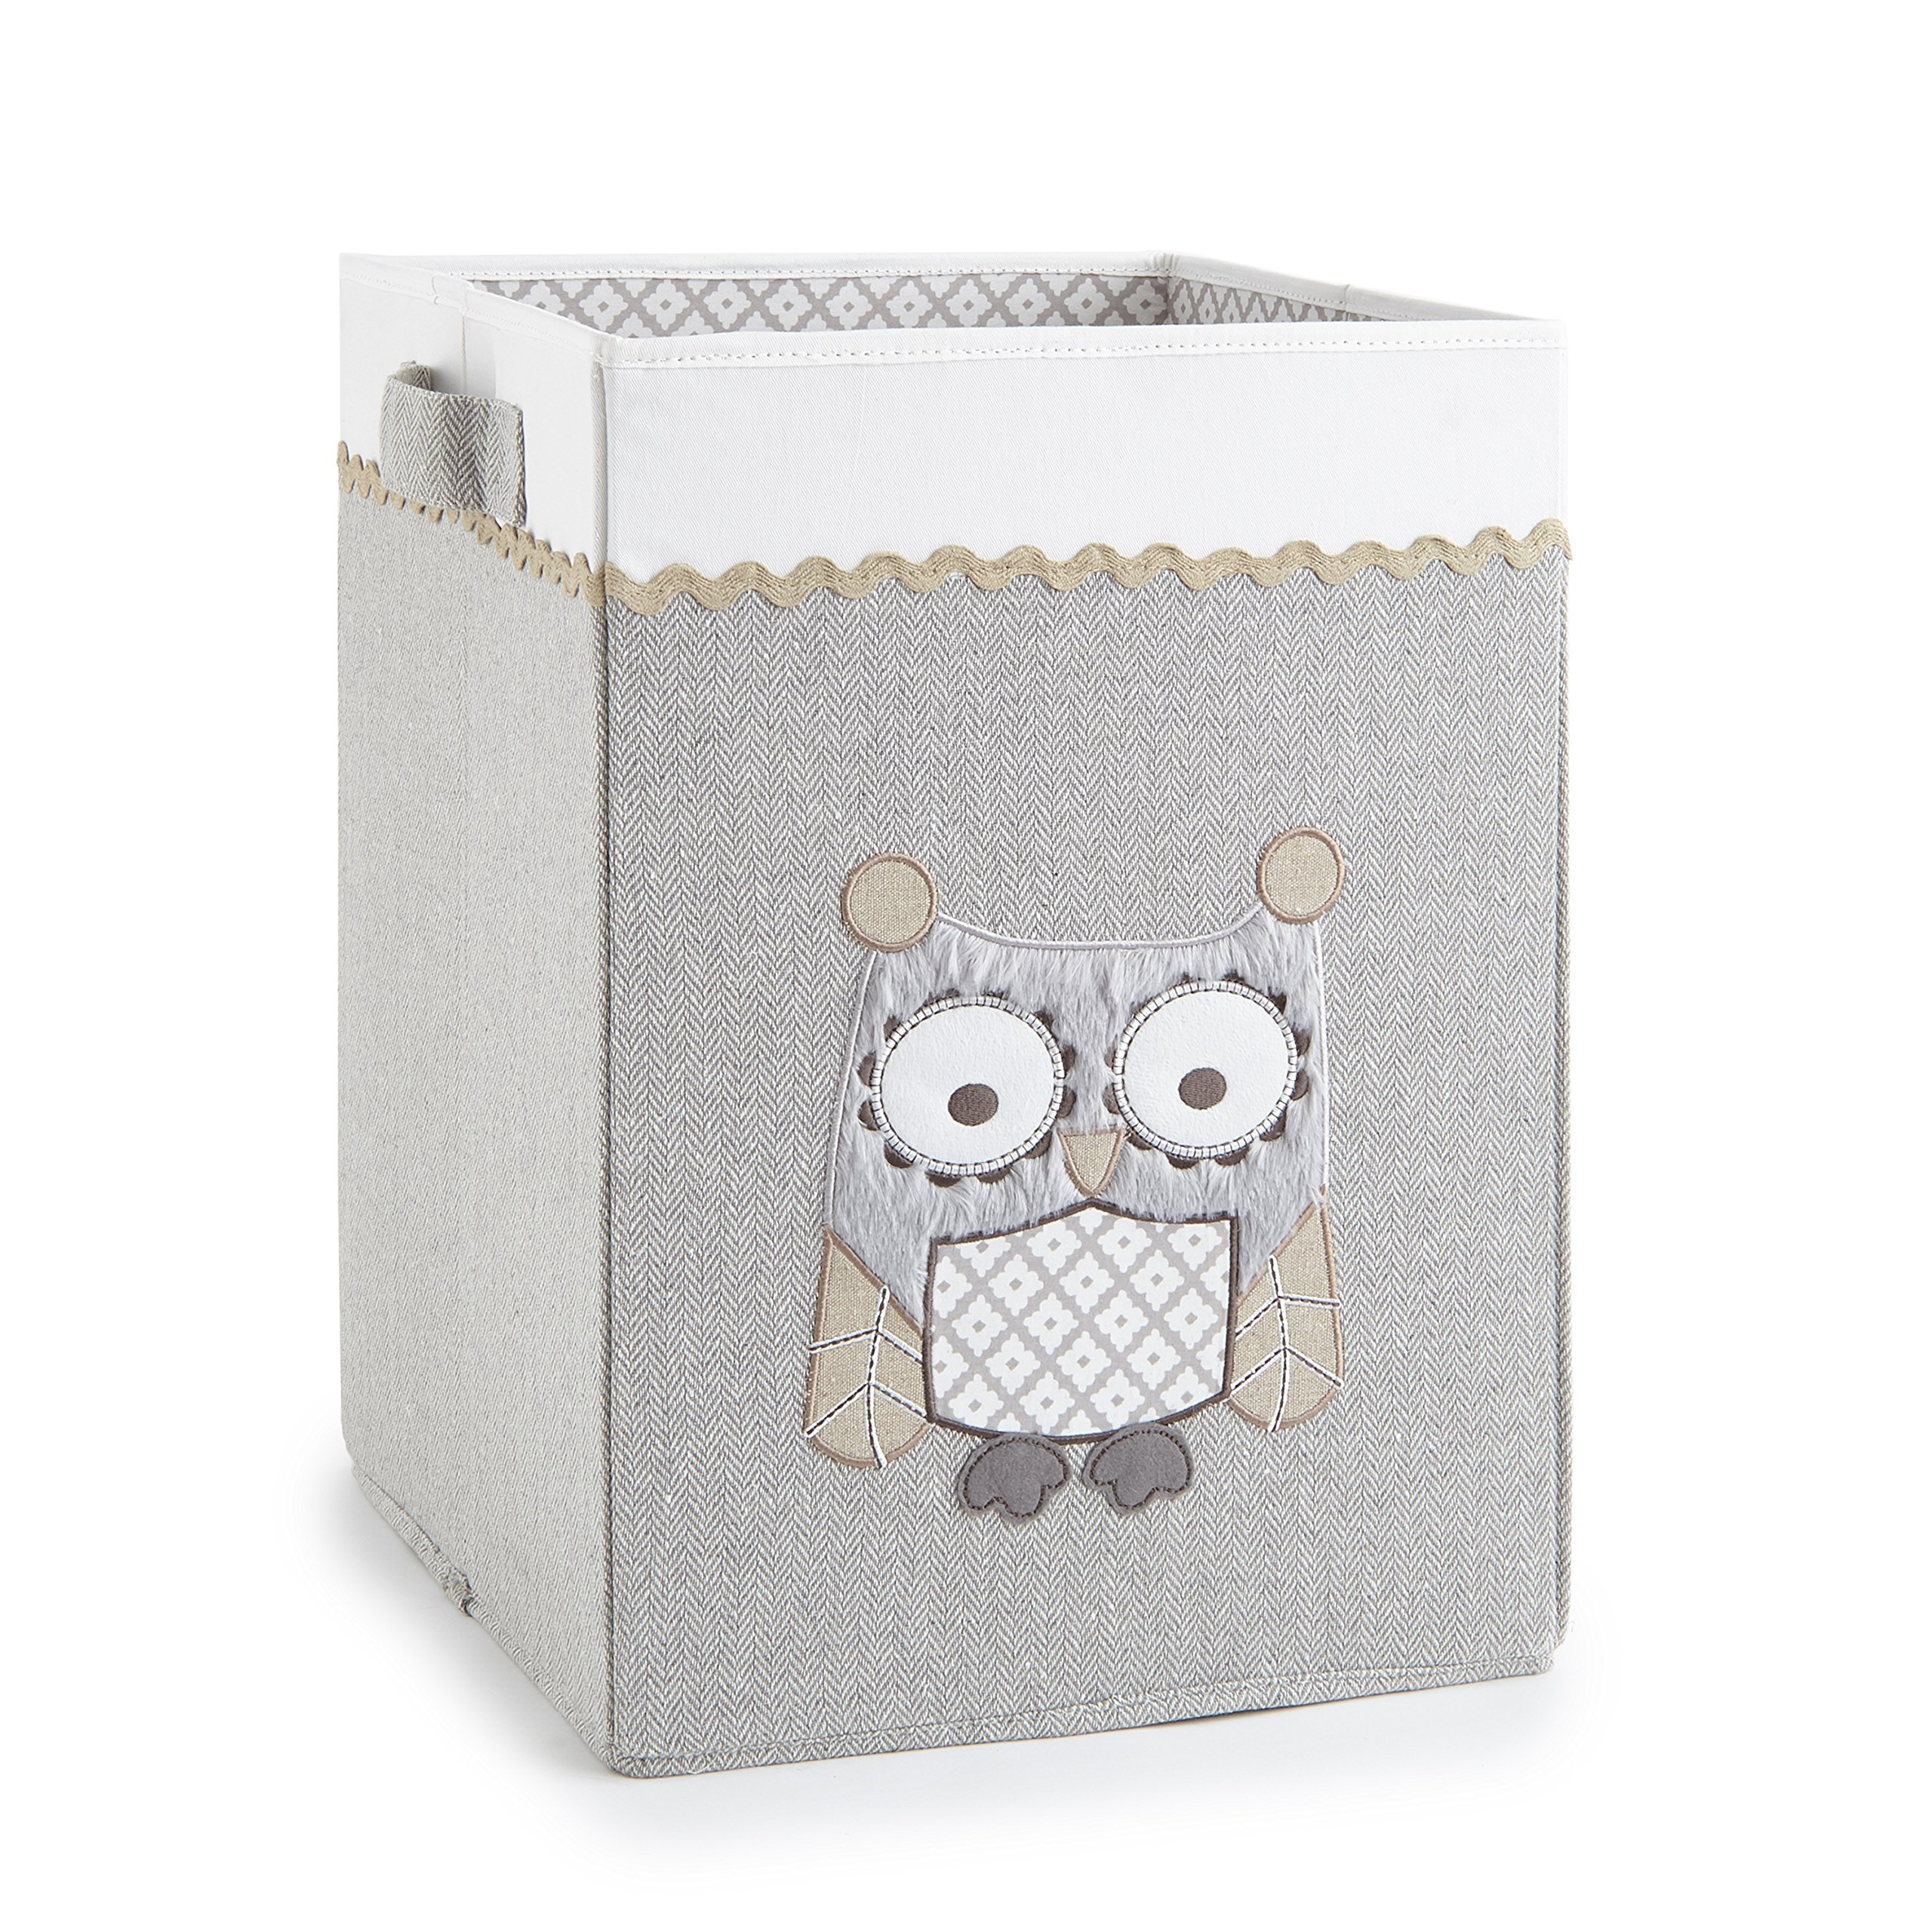 Levtex Home Baby Night Owl Hamper, Taupe